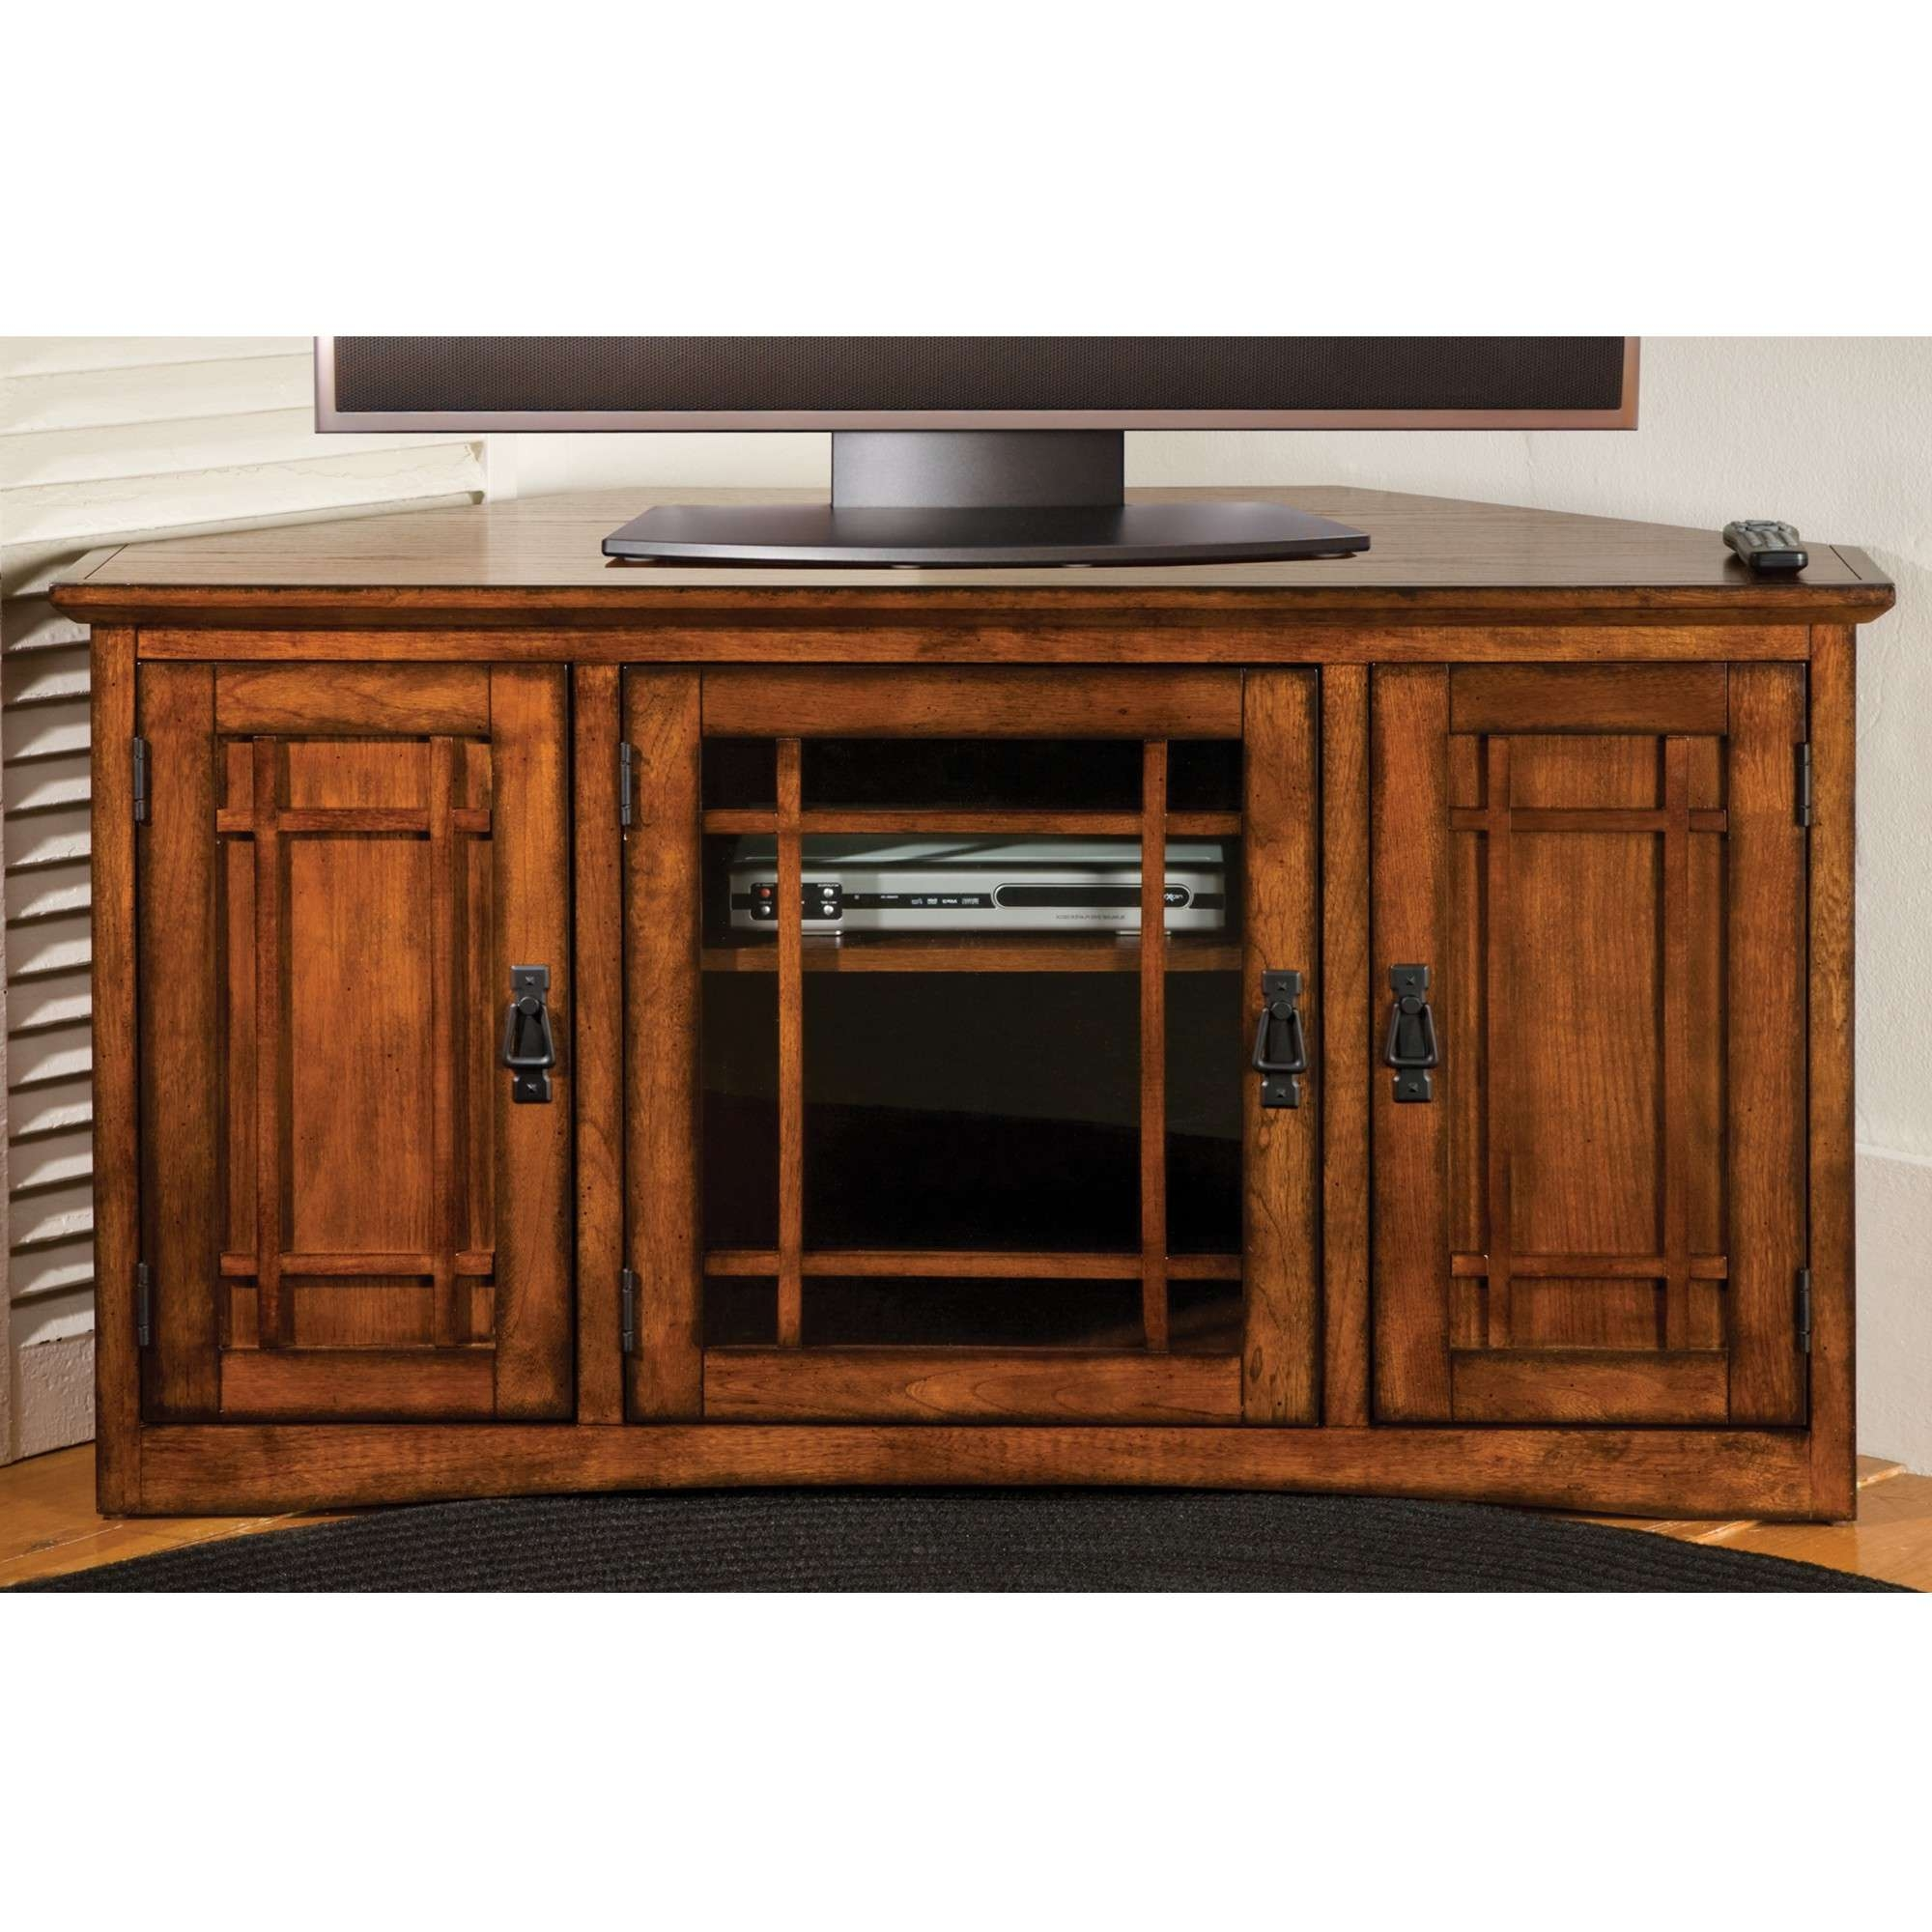 Mission Corner Tv Cabinet | Sturbridge Yankee Workshop With Regard To Oak Tv Stands With Glass Doors (View 9 of 15)